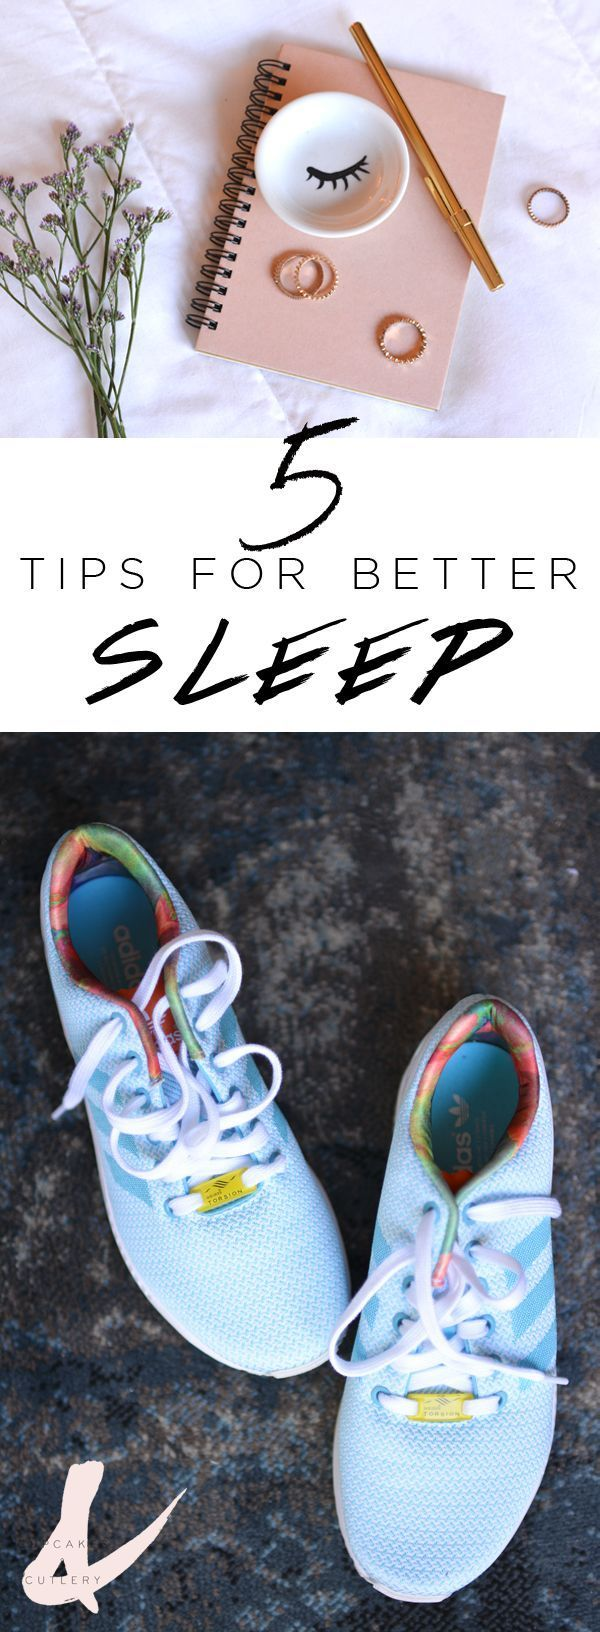 If you want to get a better night of sleep, I've got 5 tips to help you change up your bedtime routine. The natural sleep supplement is my favorite! It is a MUST for any stressed out busy mom (or Dad with insomnia)! #RestAndRenew #ad